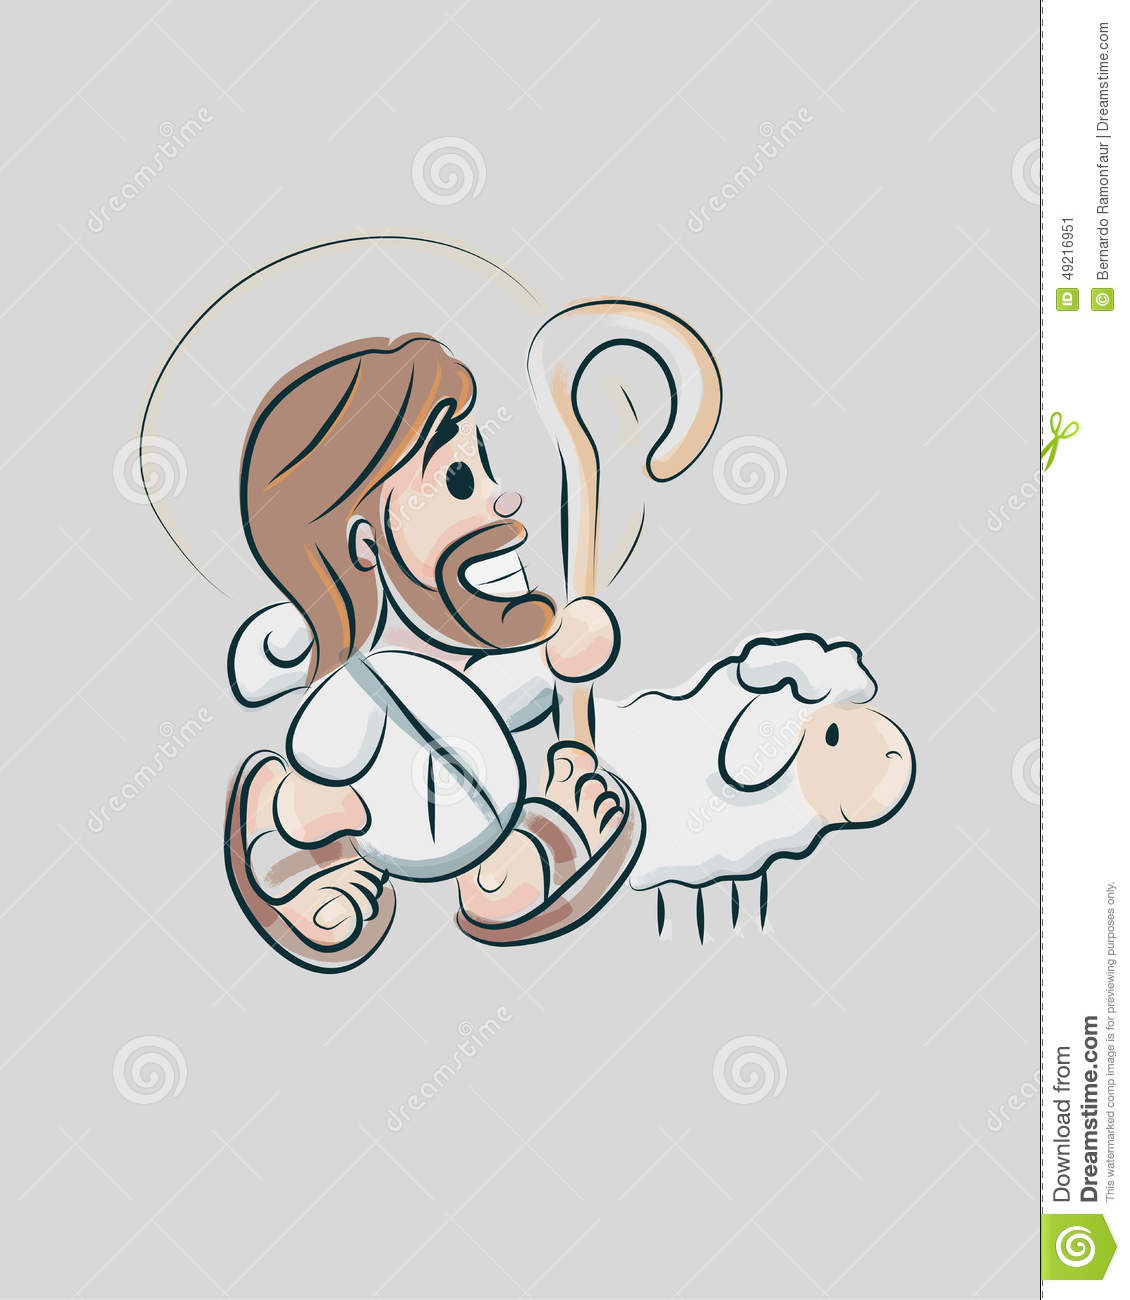 ... of a smiling Jesus Good Shepherd with a sheep in a cartoon style